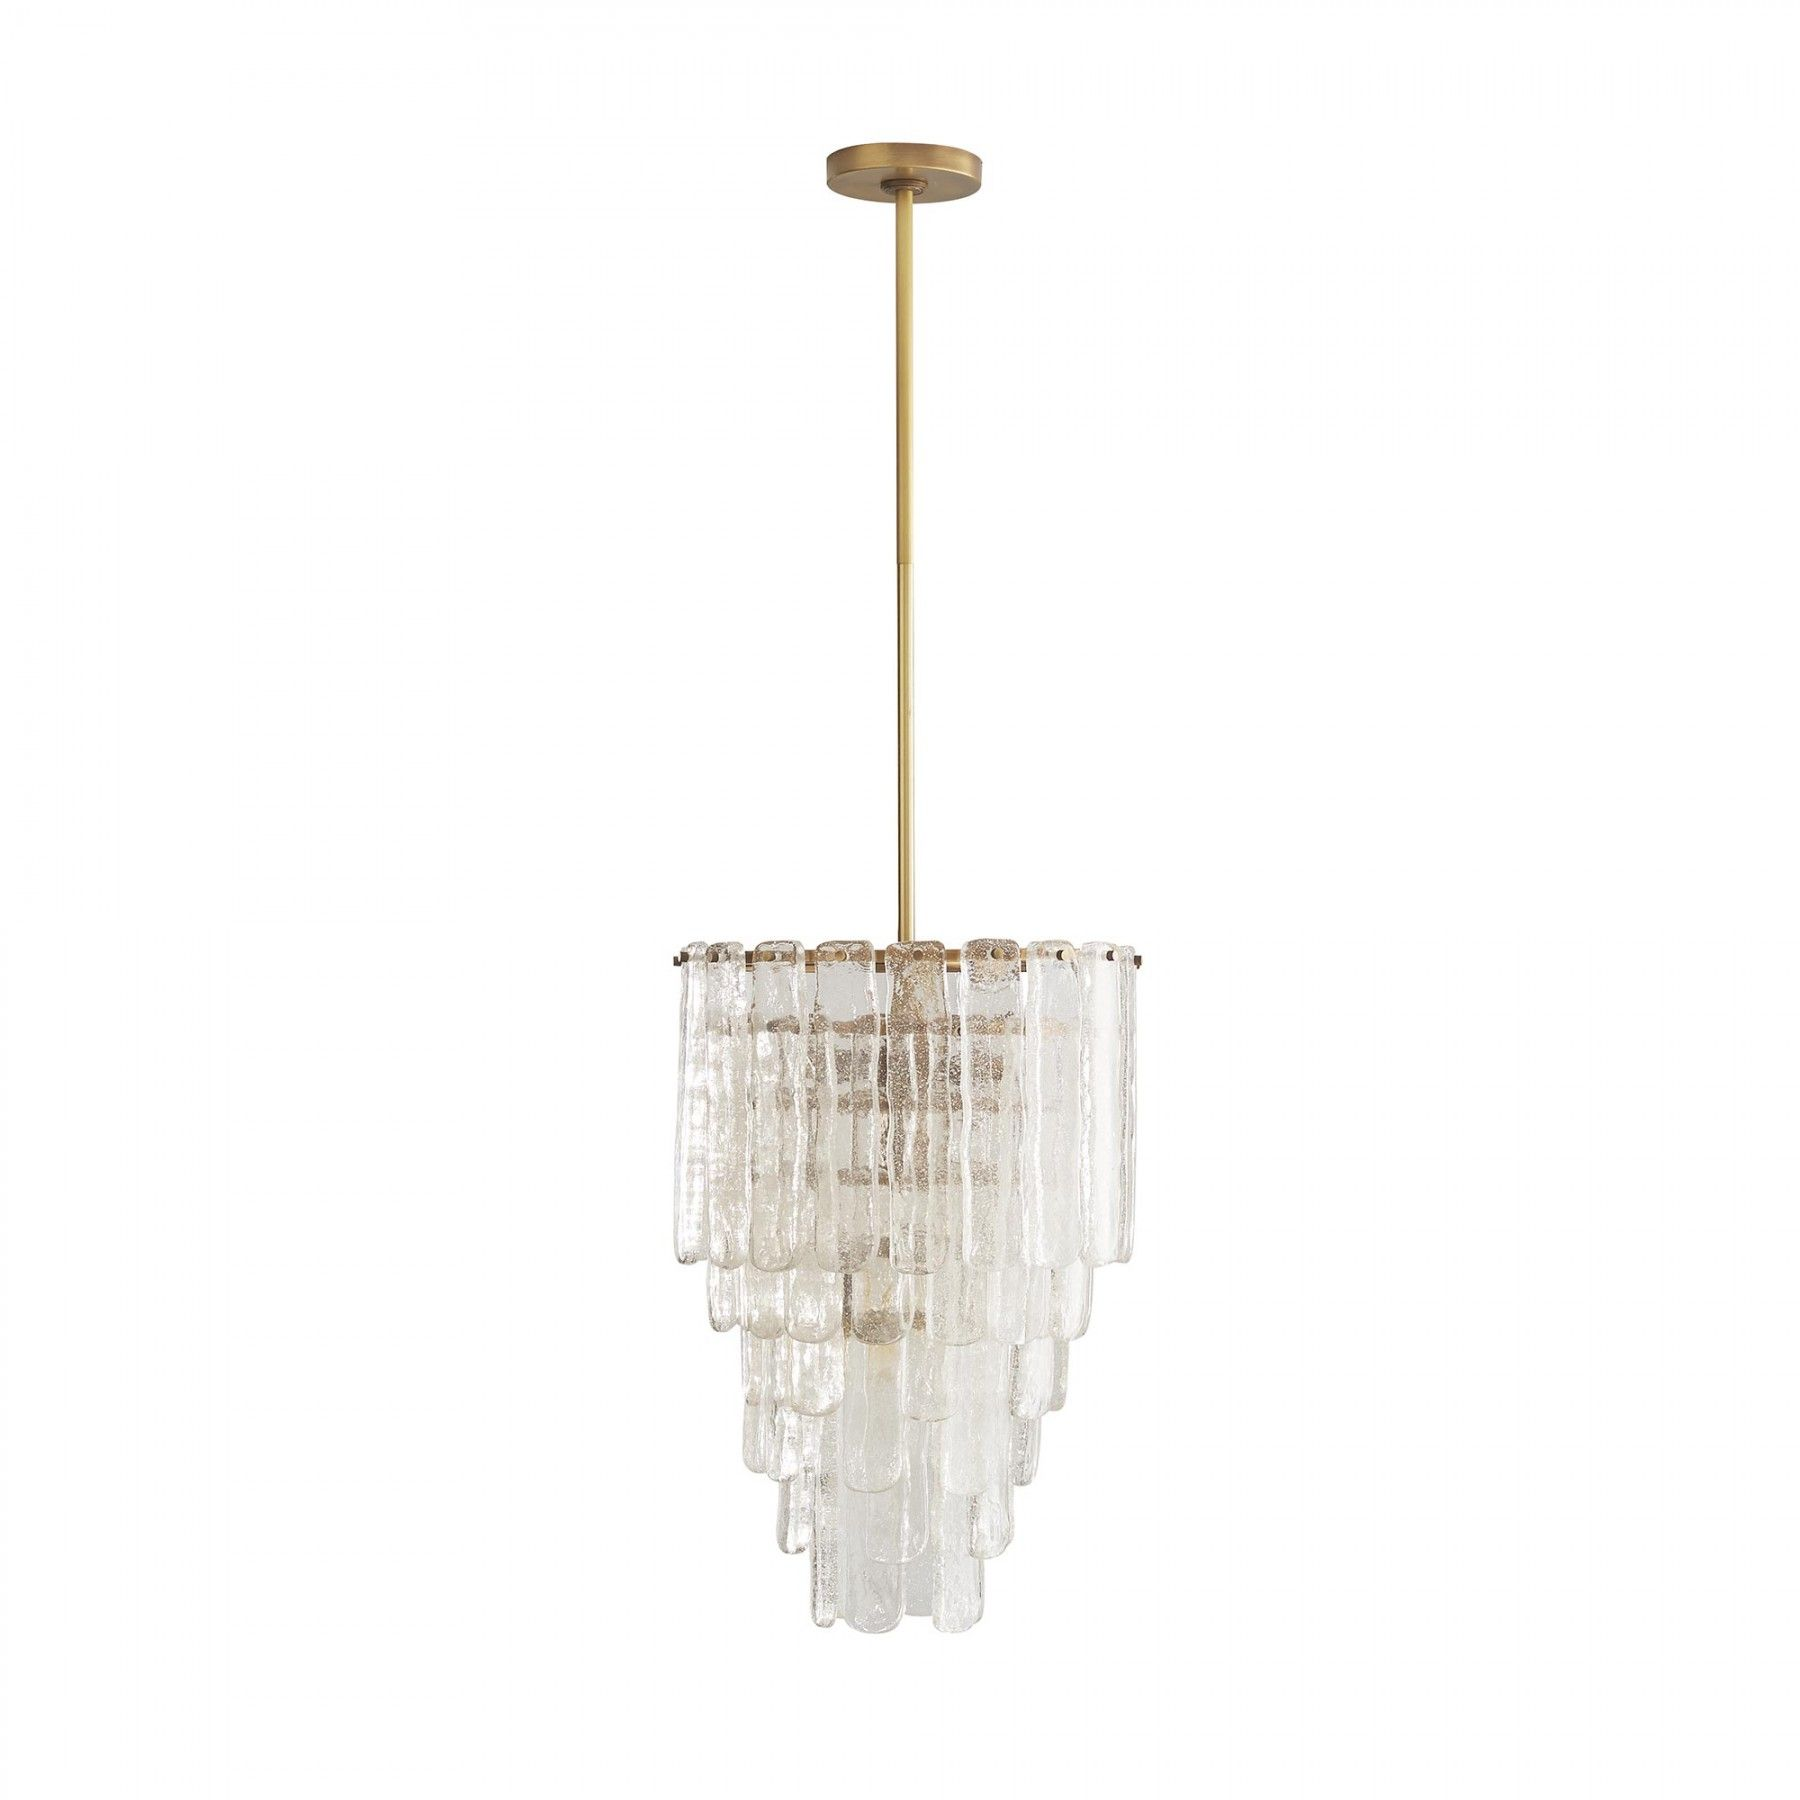 Five Tiers Of Clear Seedy Glass Plates Come Together To Form The Arresting Three Light Larie Chandelier Steel Frame S Antique Brass Finish Sets A